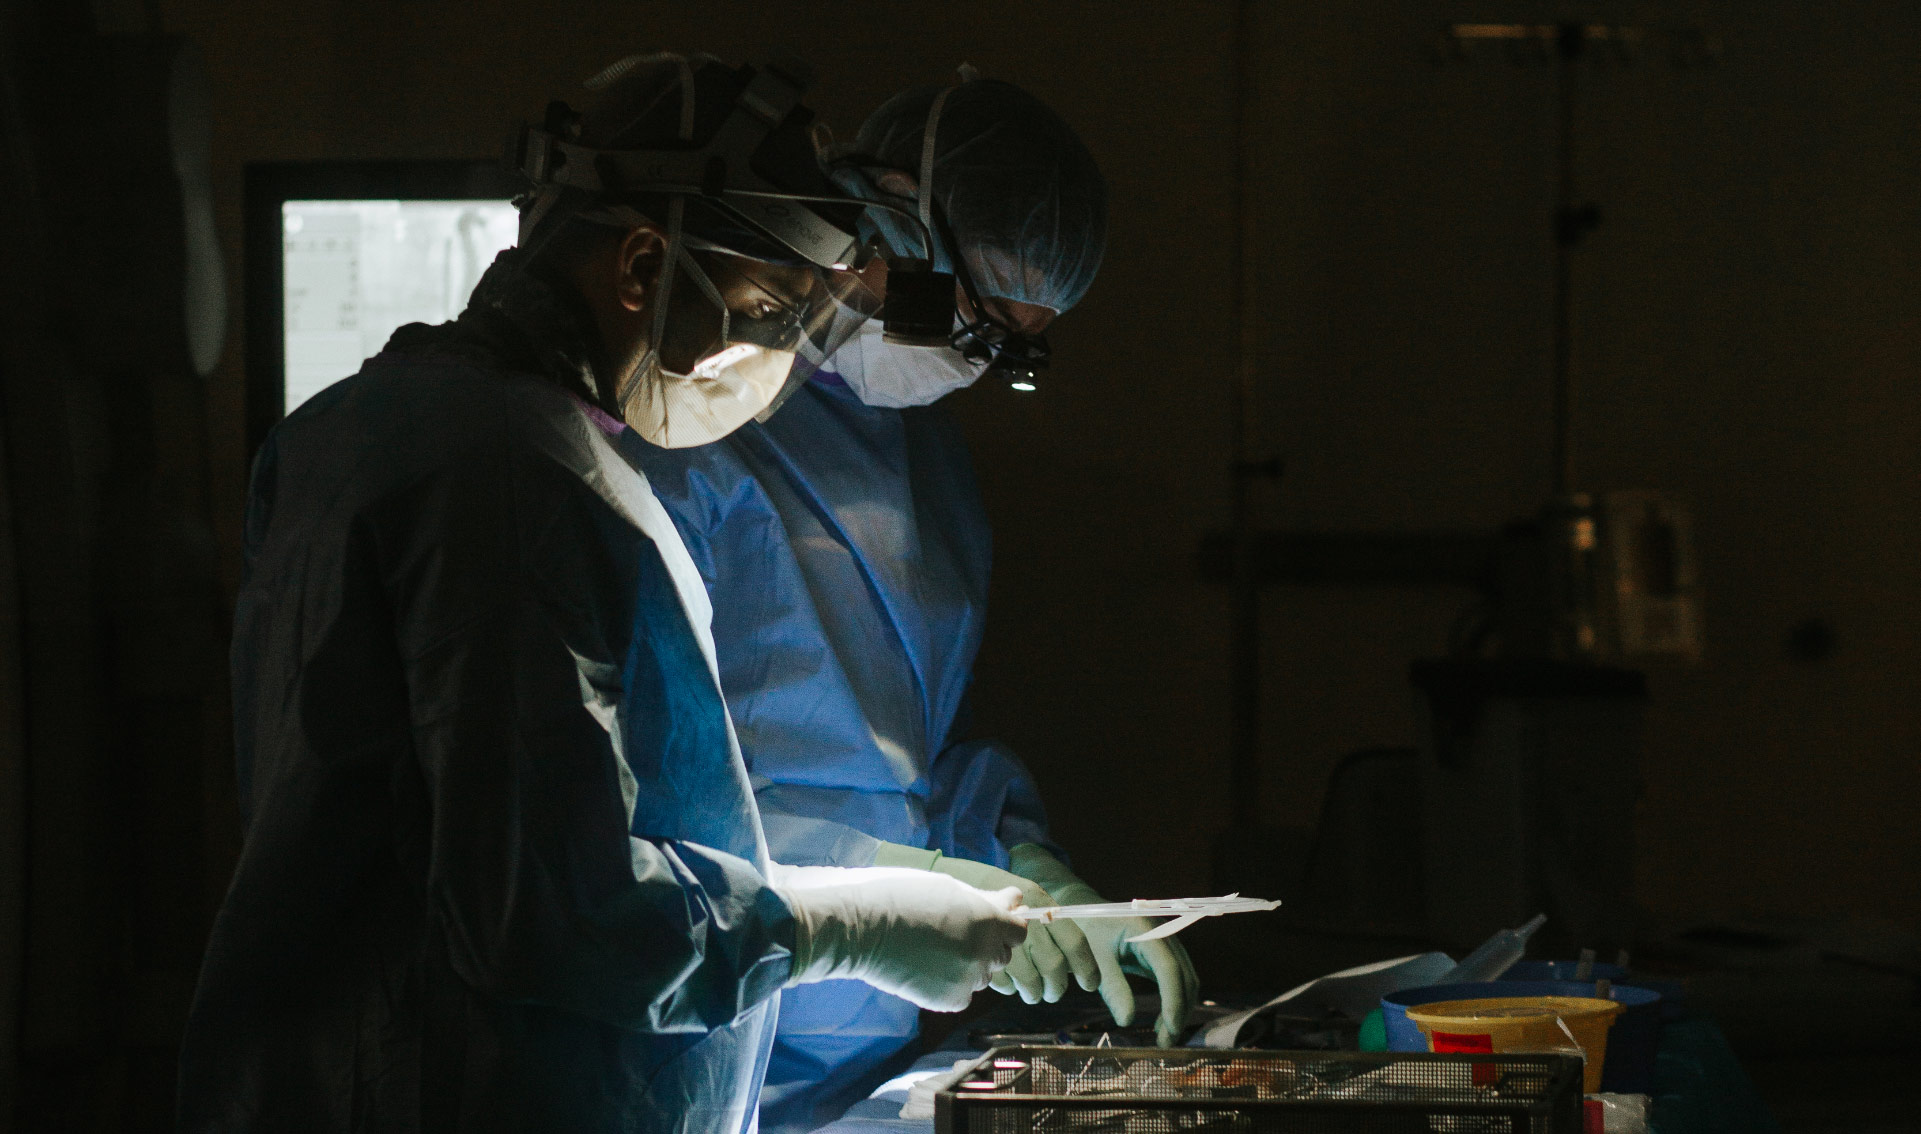 Dr. Gurley and a colleague perform a surgery. The photo features dramatic lighting and a dark background.